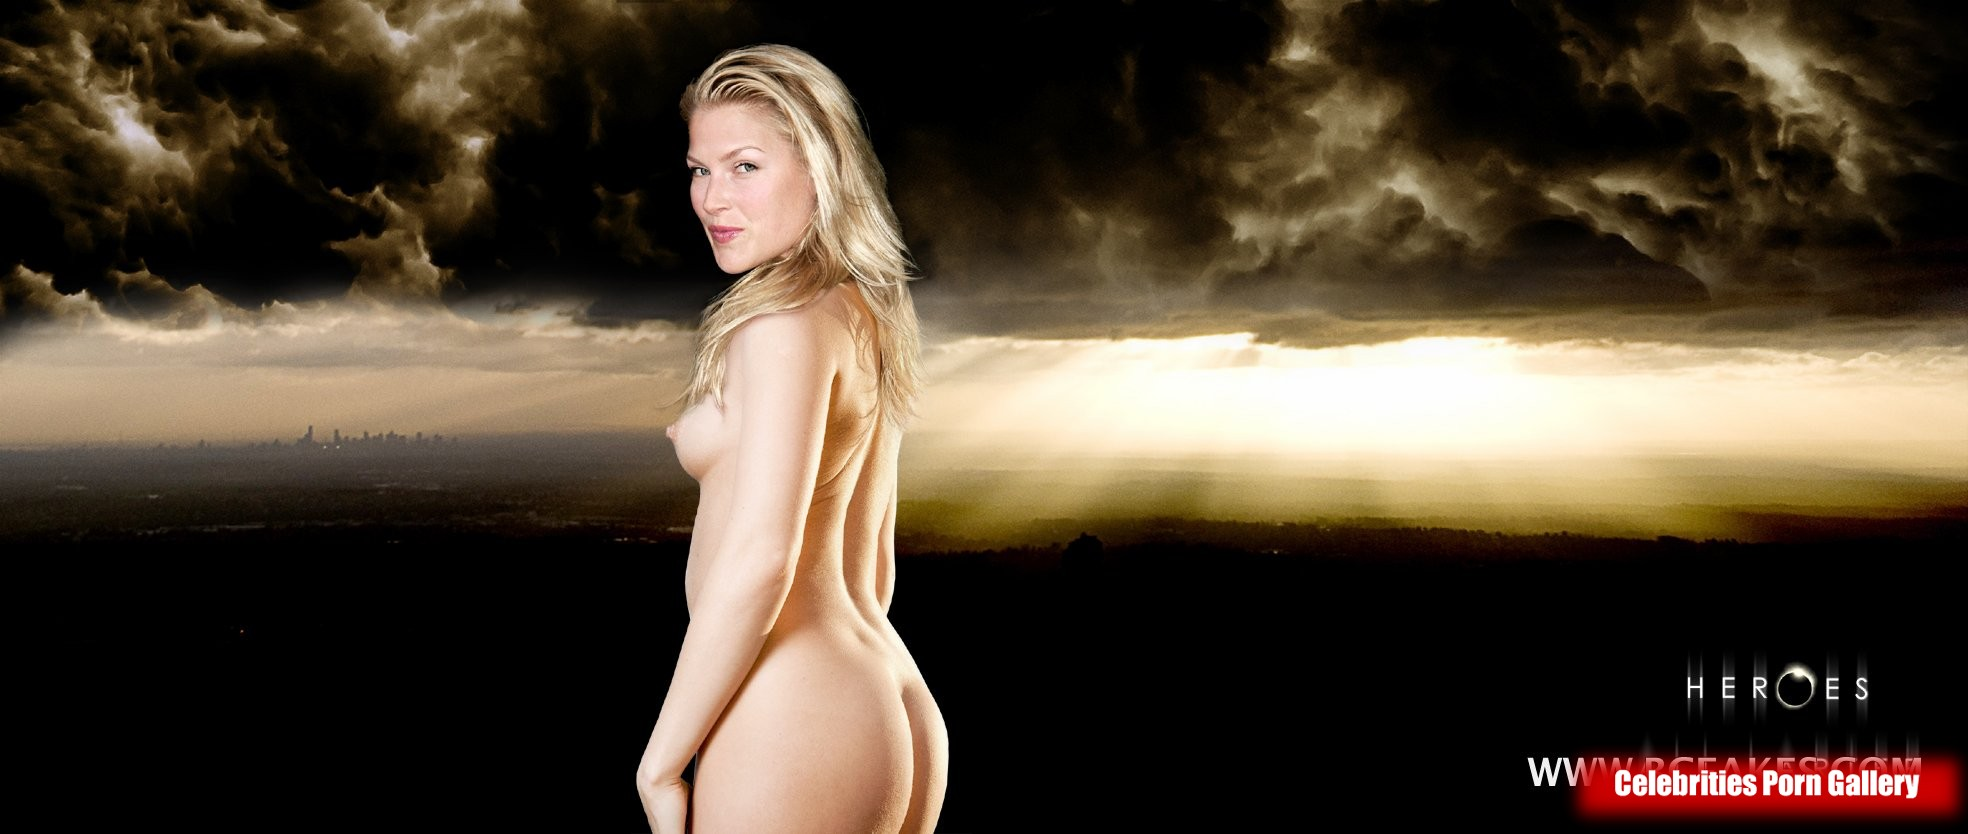 Ali larter naked the first time people noticed her